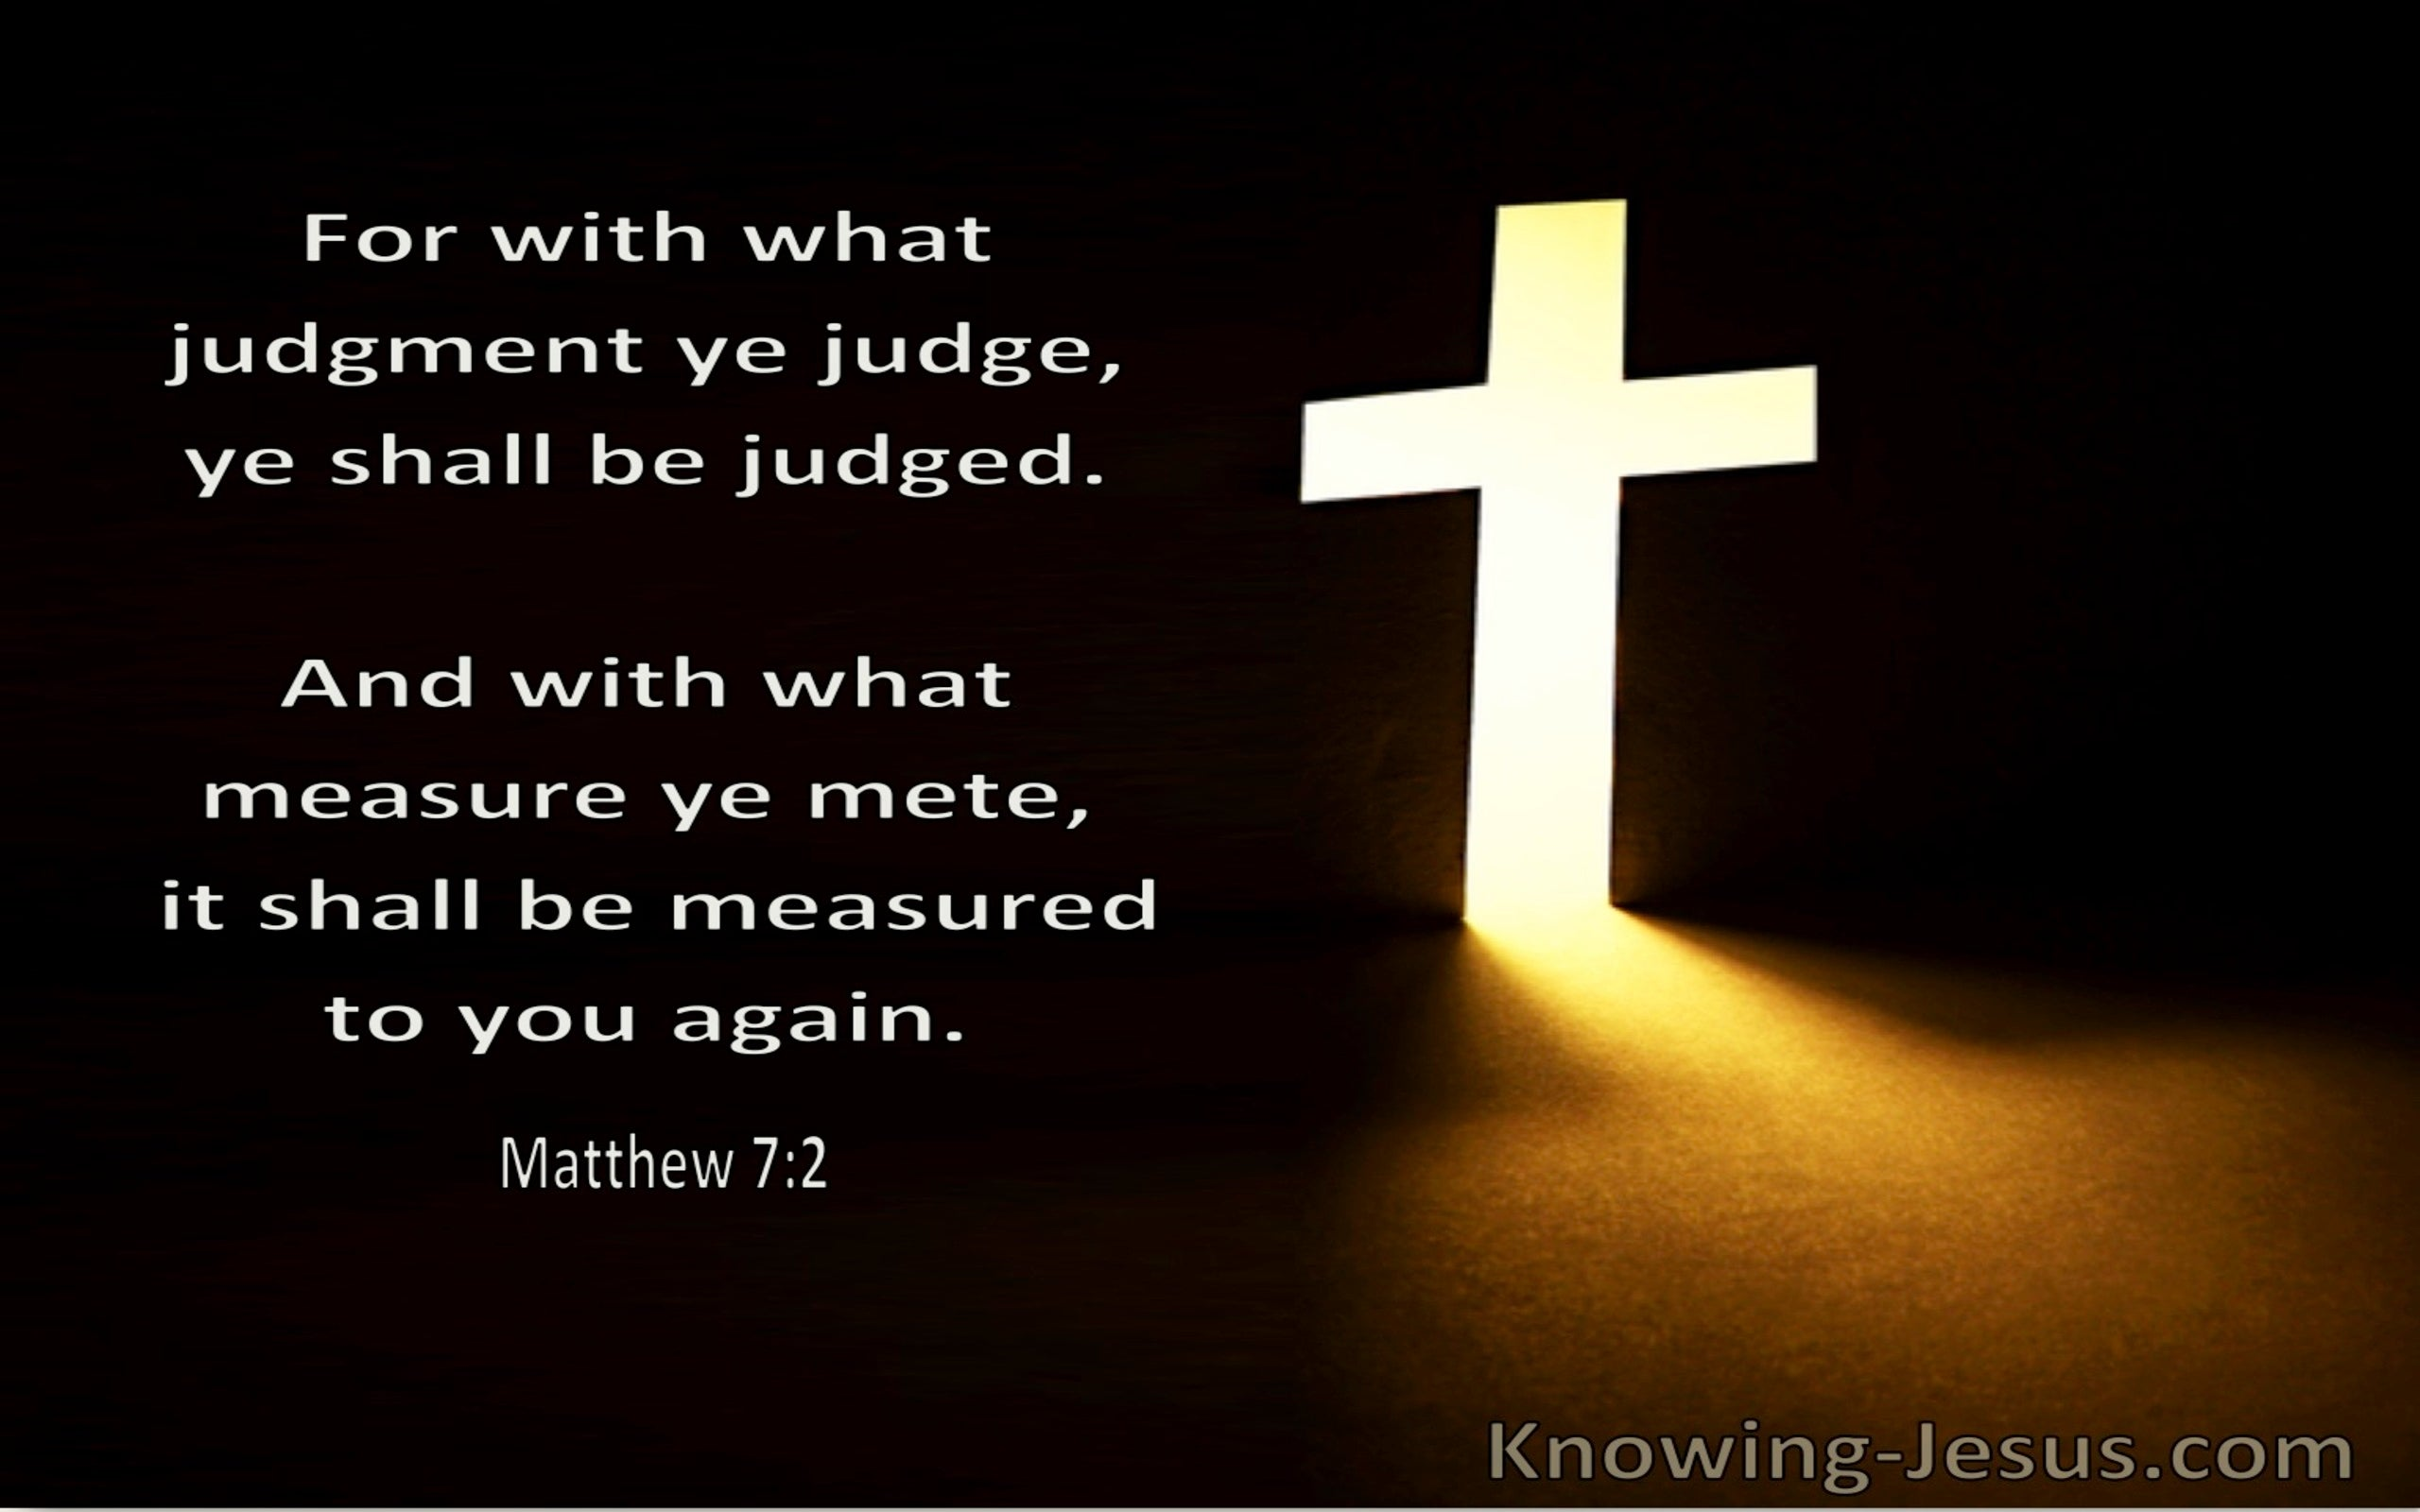 Matthew 7:2 With What Judgment Ye Judge, Ye Shall Be Judged (utmost)06:22